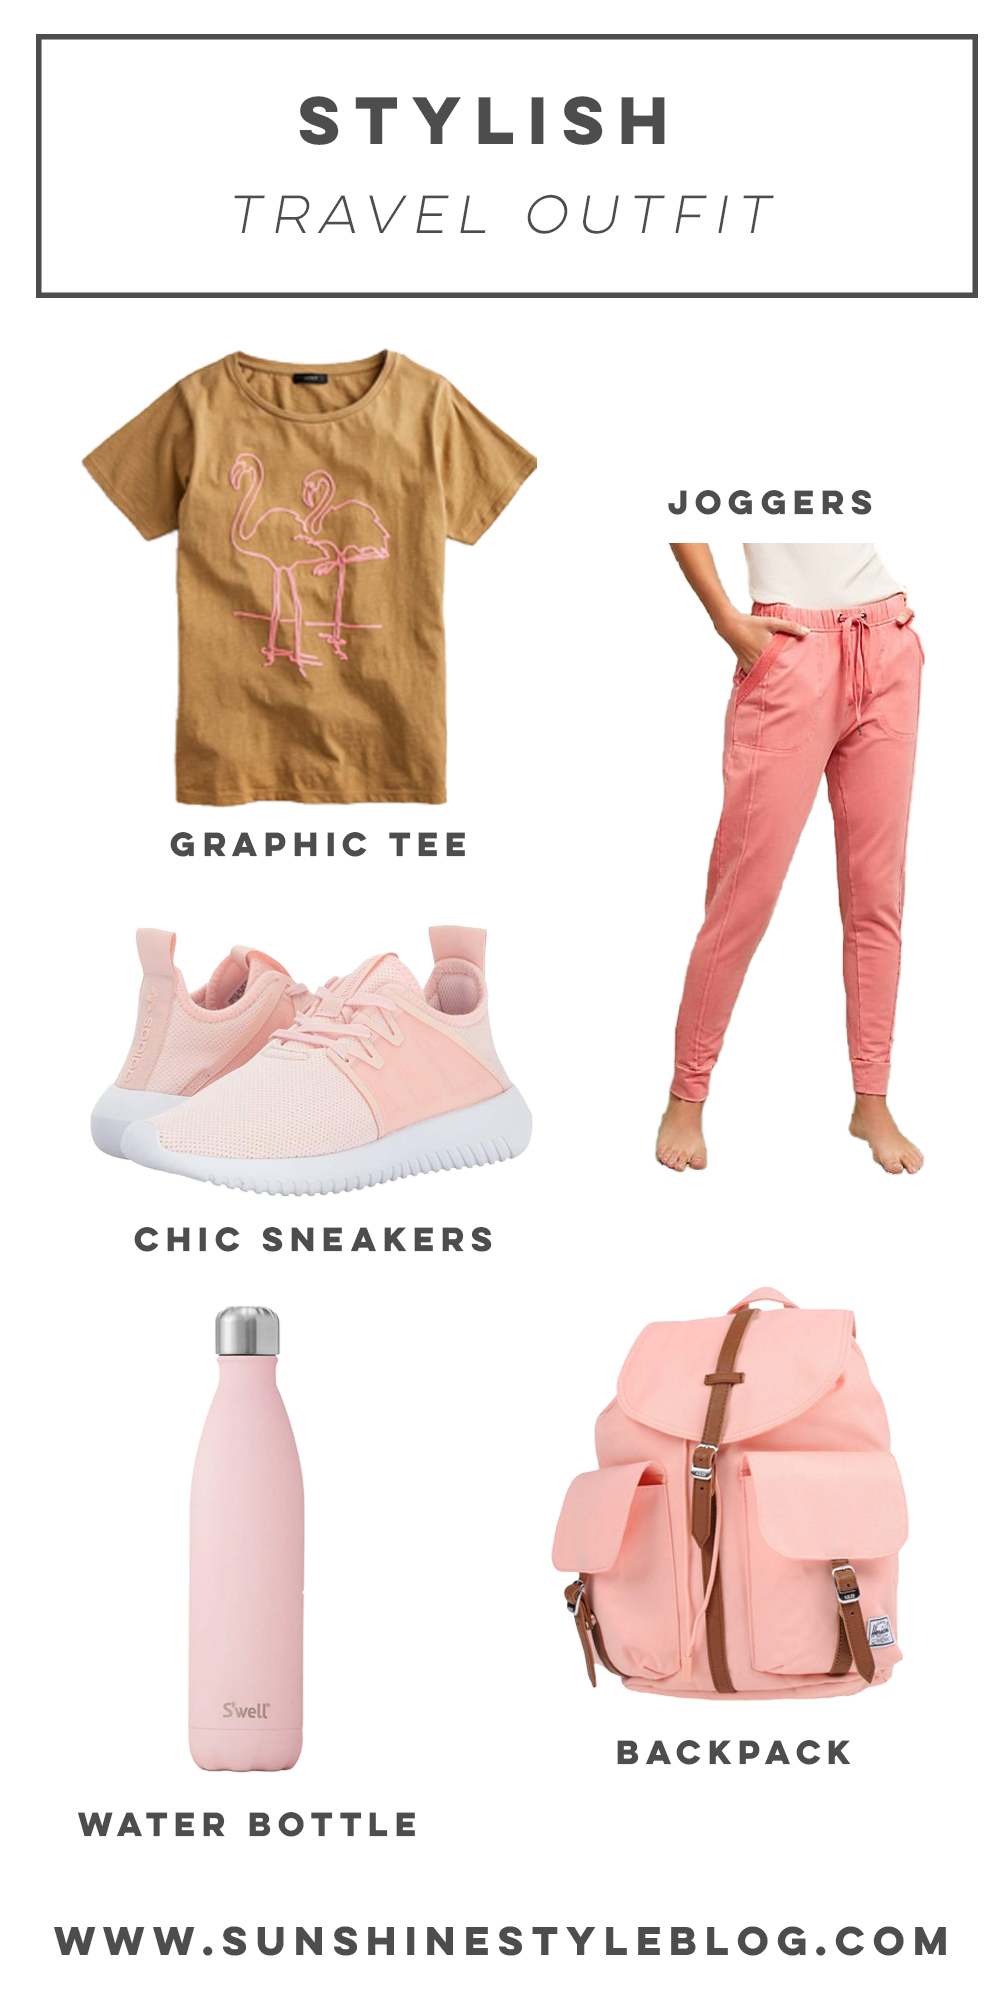 What to Wear When Traveling: A Stylish Travel Outfit Featuring Anthropologie Joggers, Swell Water Bottle, J.Crew T-Shirt, Adidas Sneakers and Aerie Sweatshirt